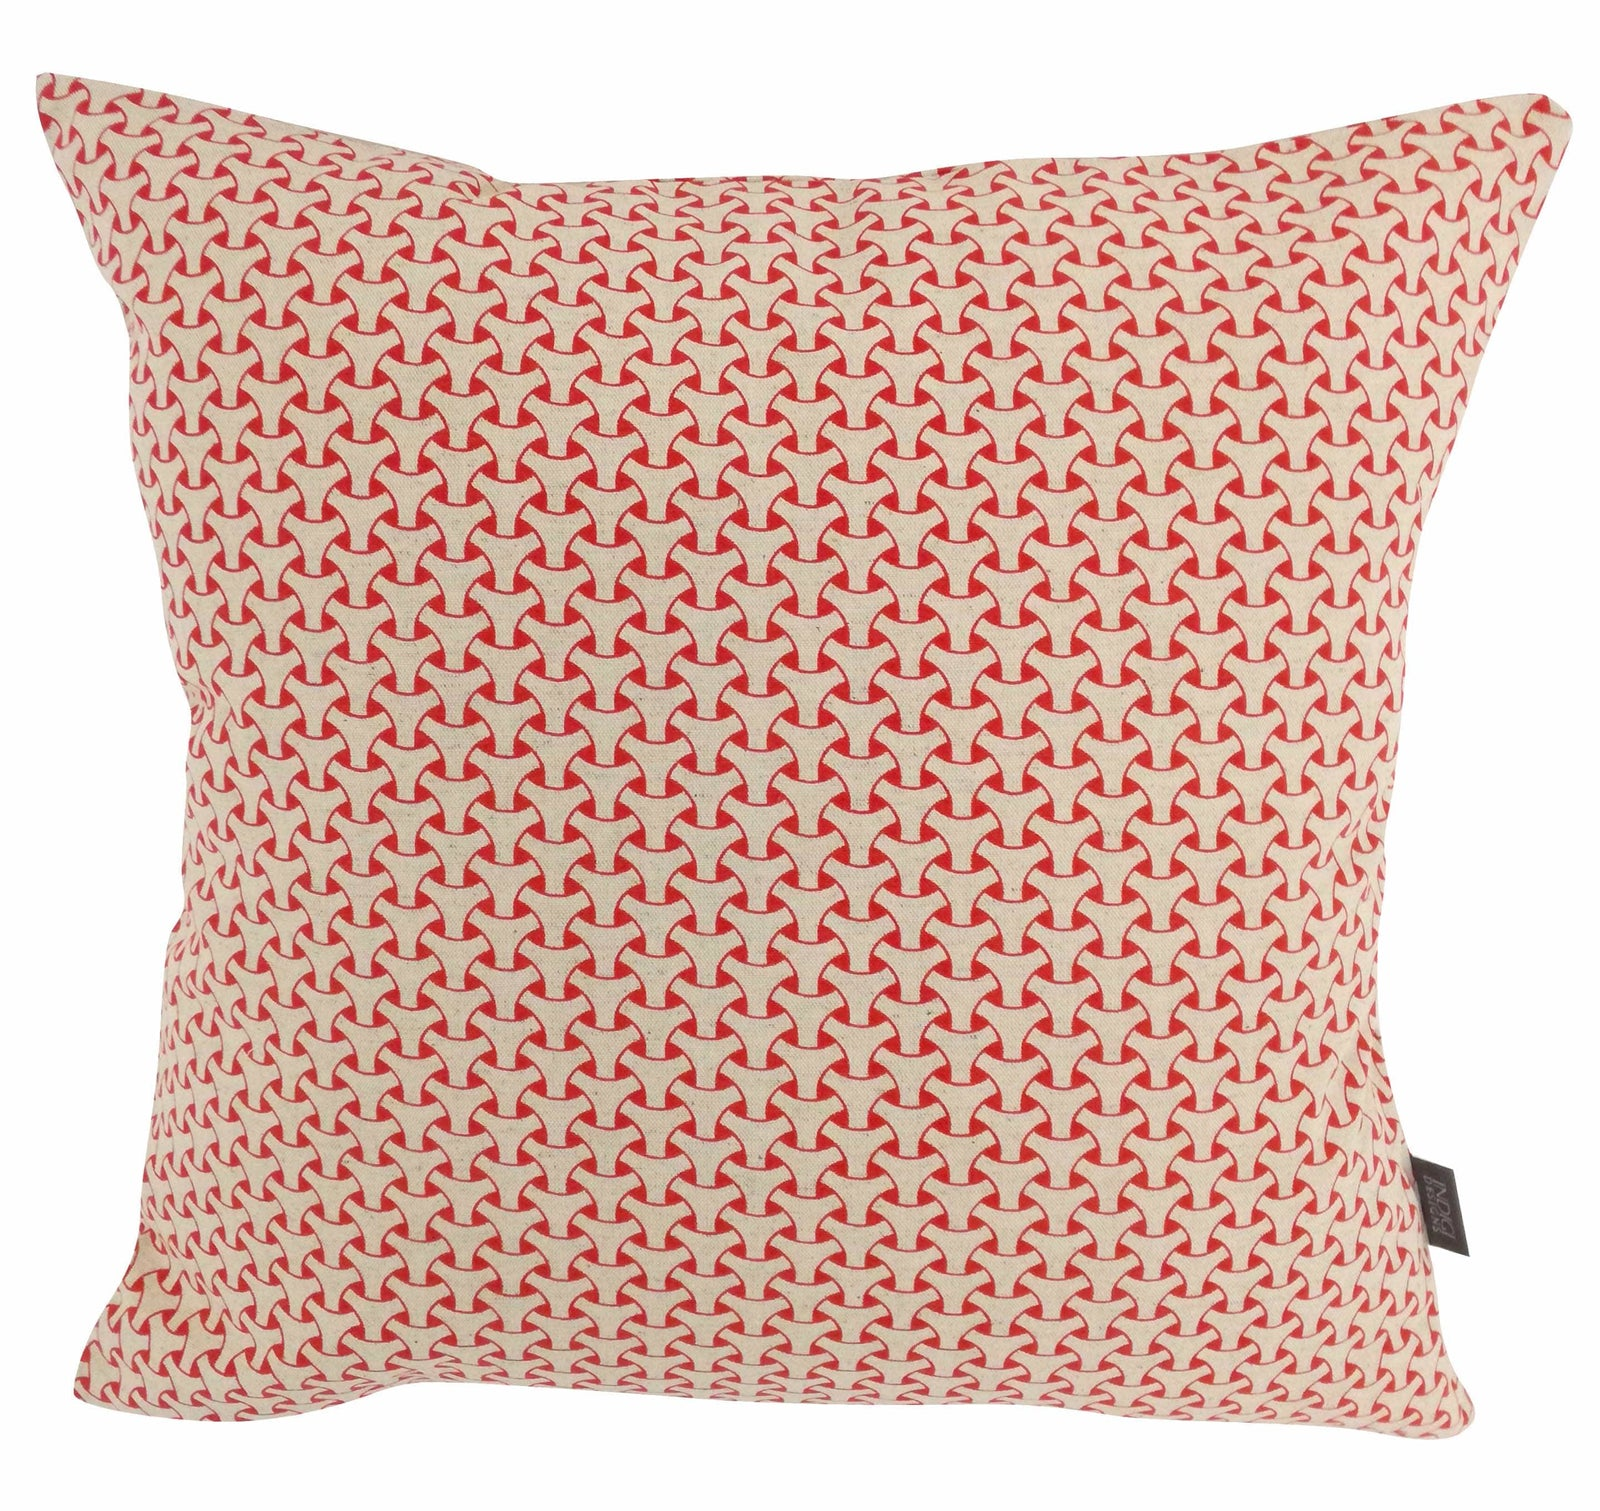 Dogon Weave Watermelon Cushion Cover